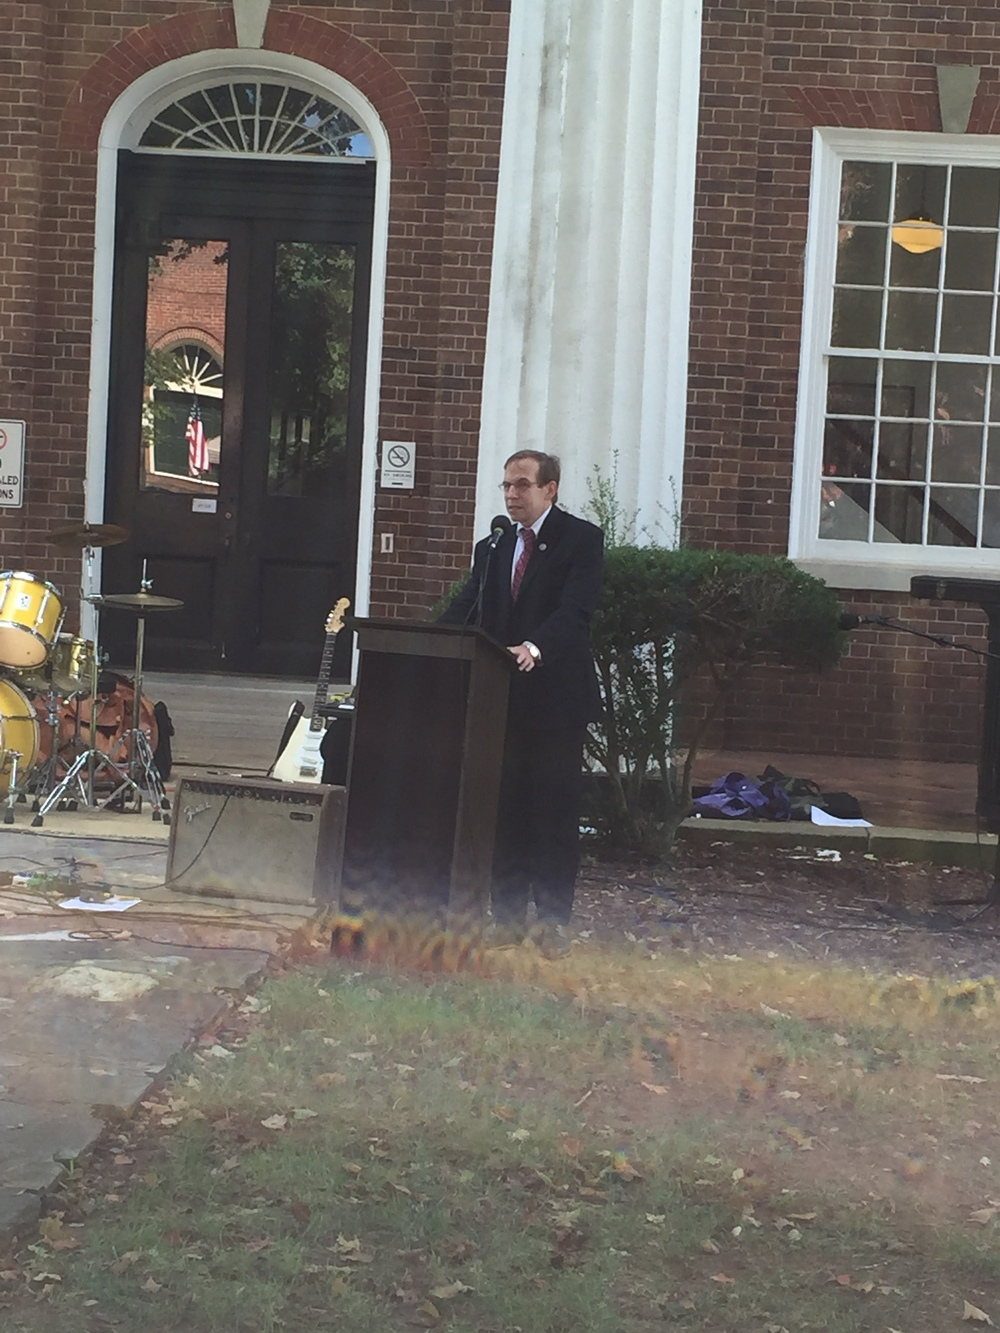 Justice Edmunds speaks at Constitution Day program, Hillsborough, 19 September 2015.